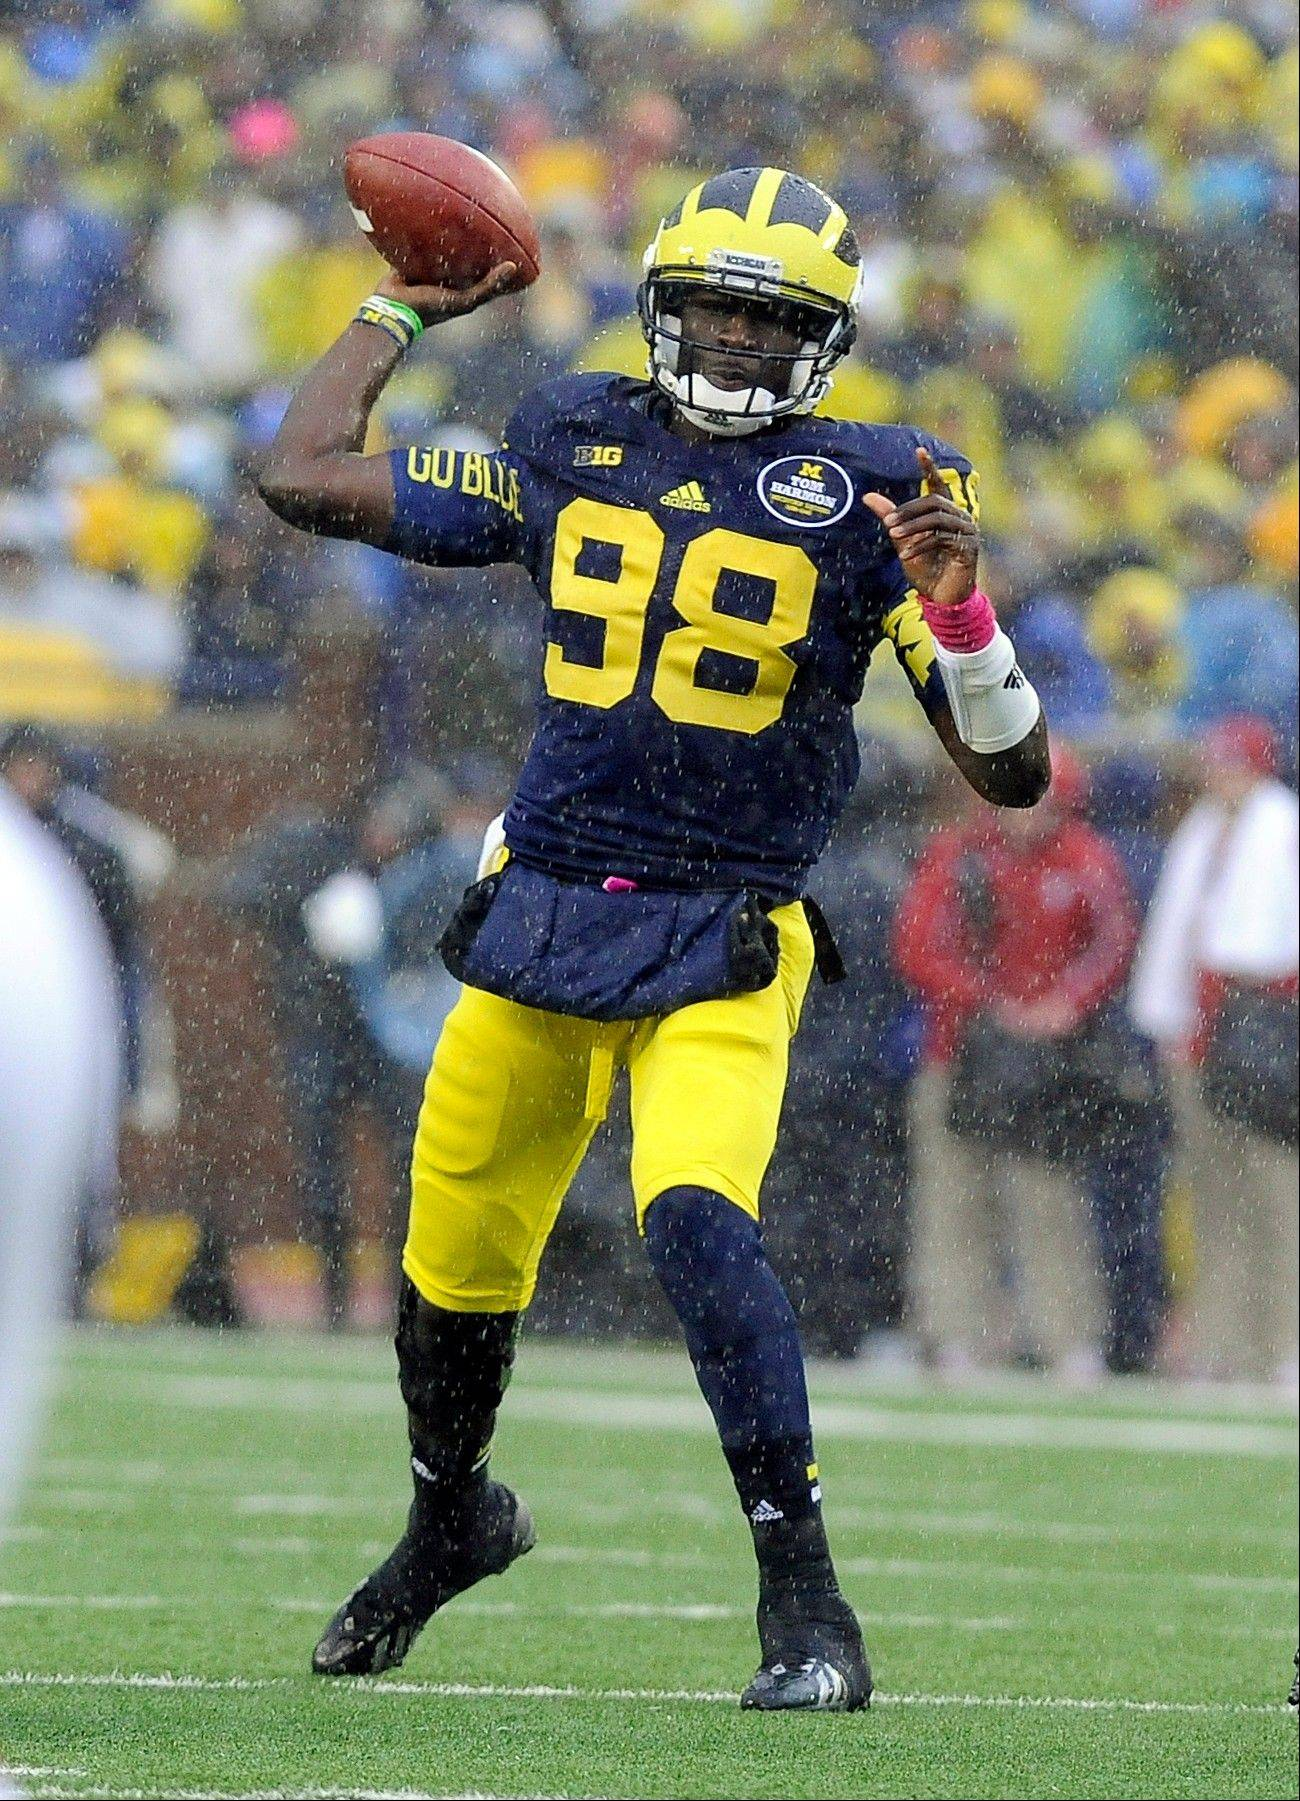 Michigan quarterback Devin Gardner throws a pass in the rain during the Oct. 19 game against Indiana in Ann Arbor, Mich.